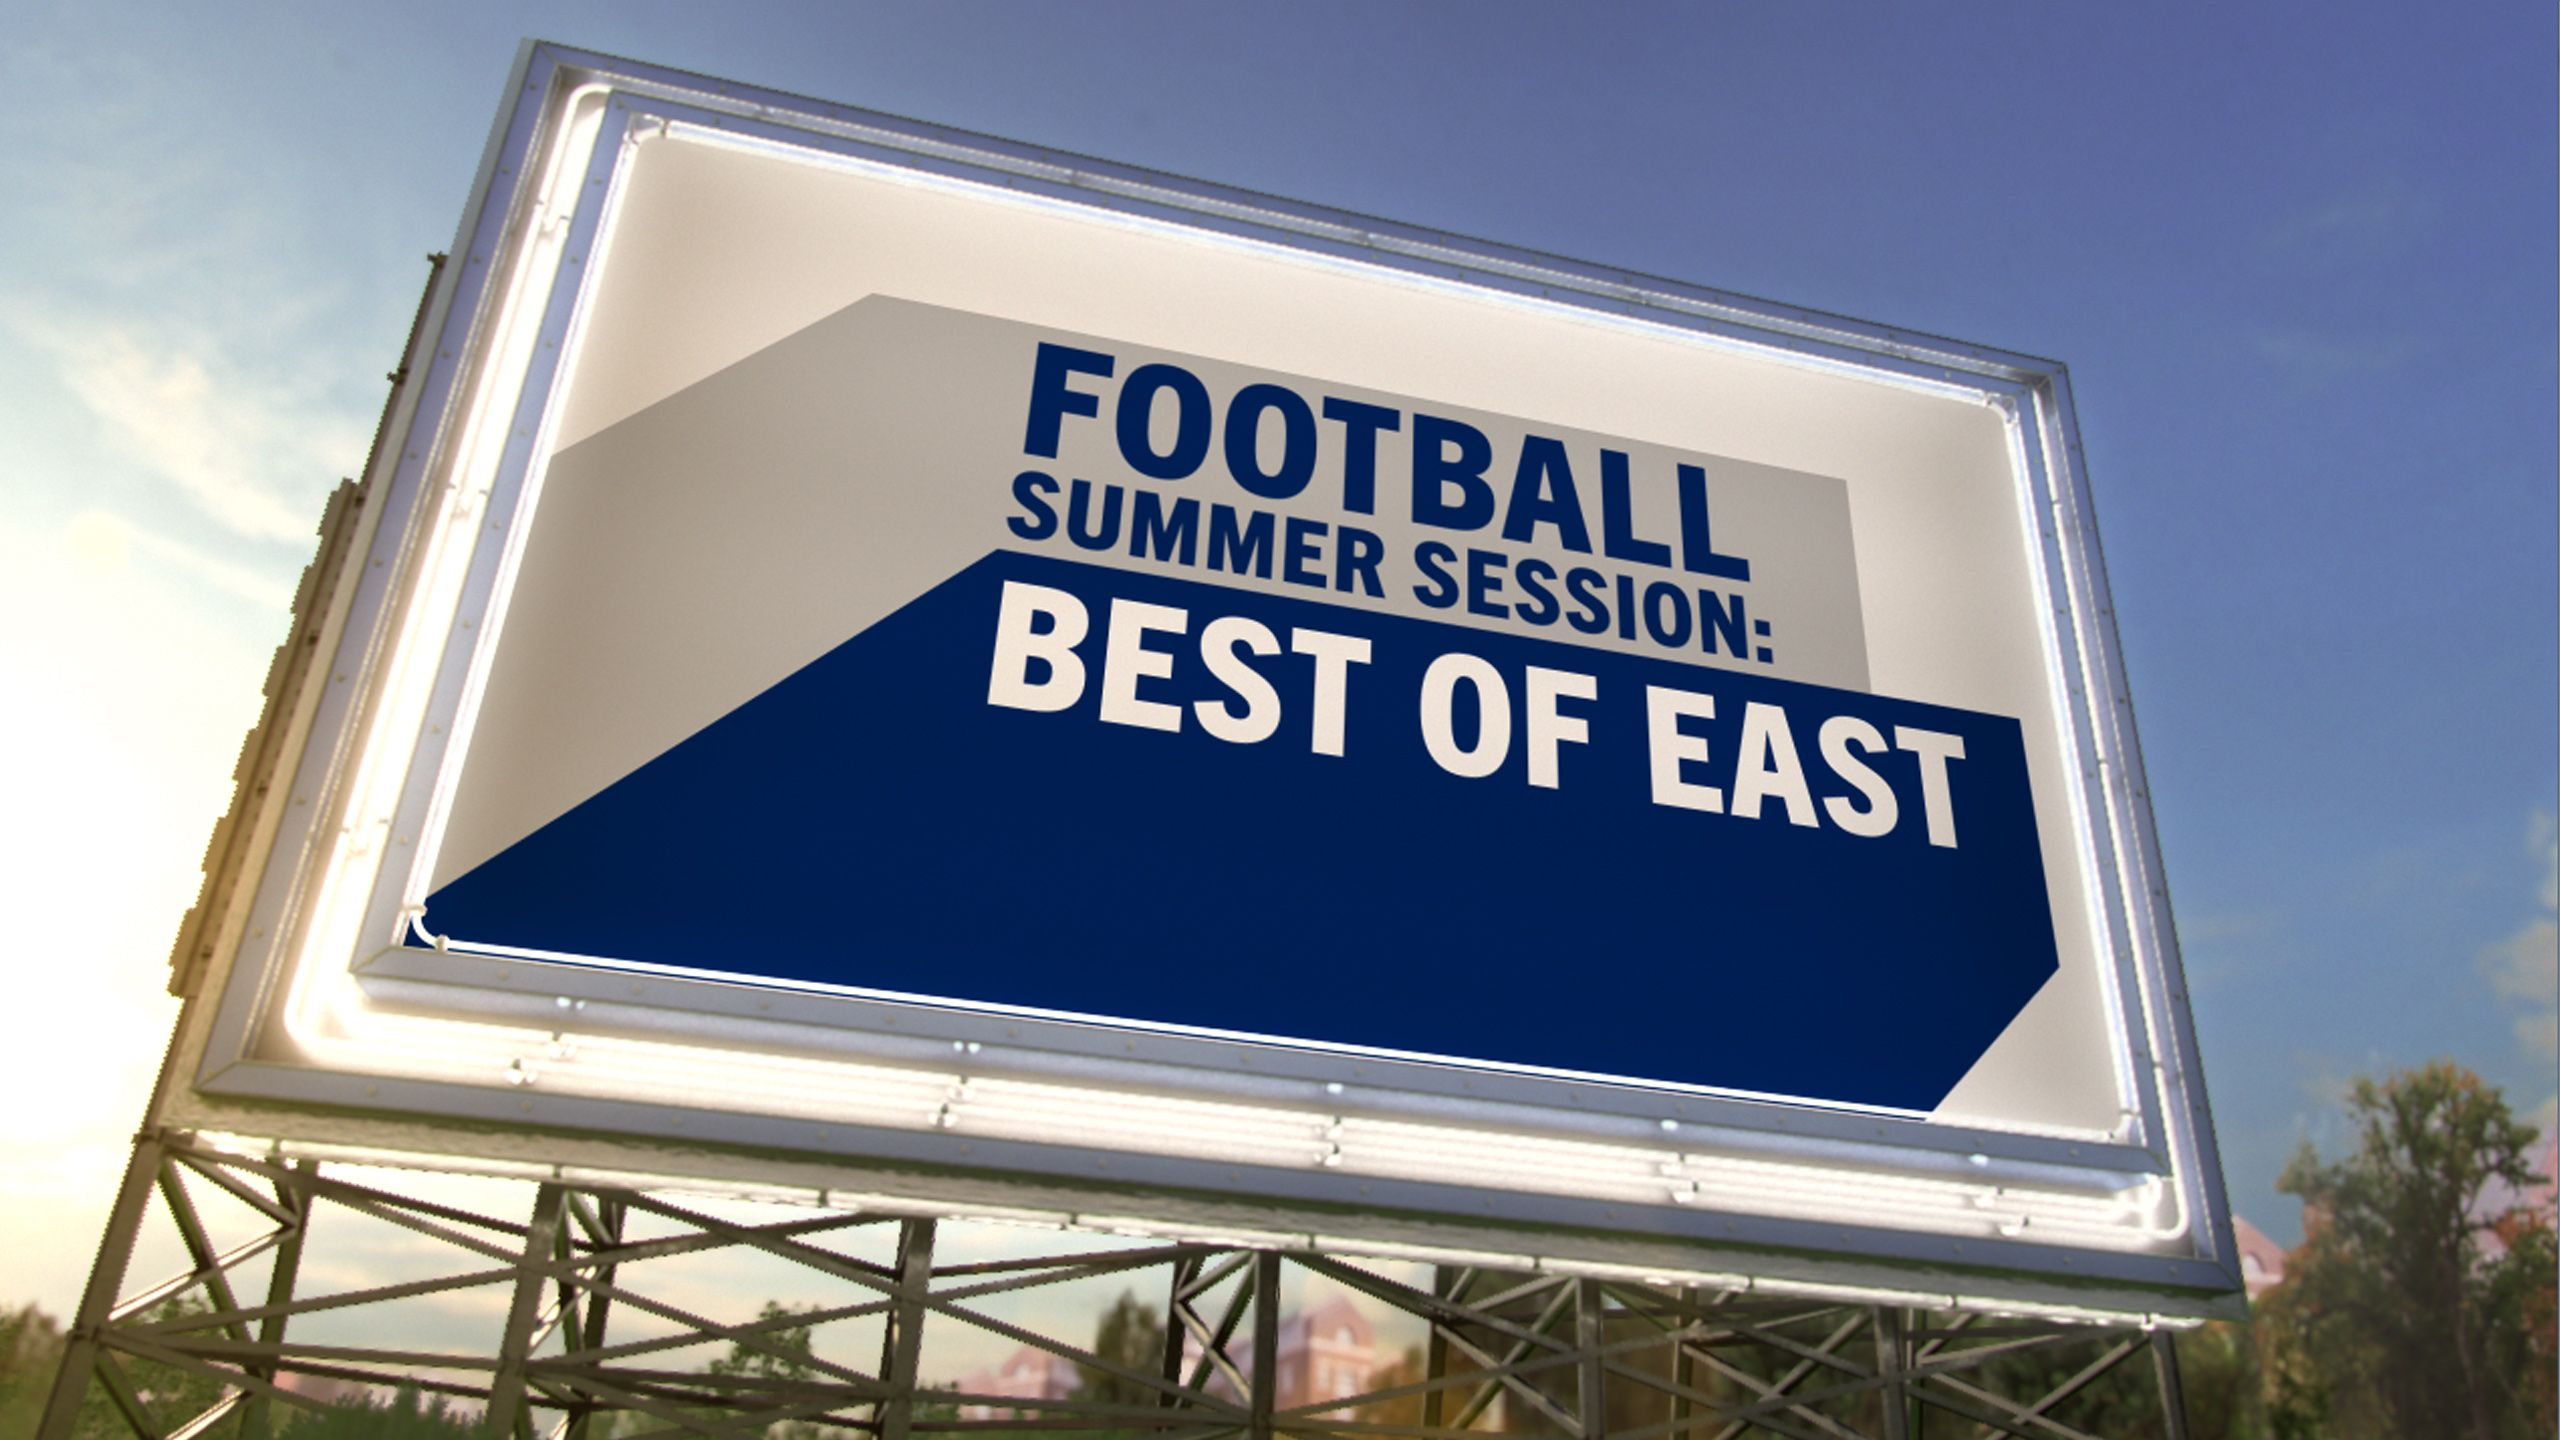 Football Summer Session: East Recap